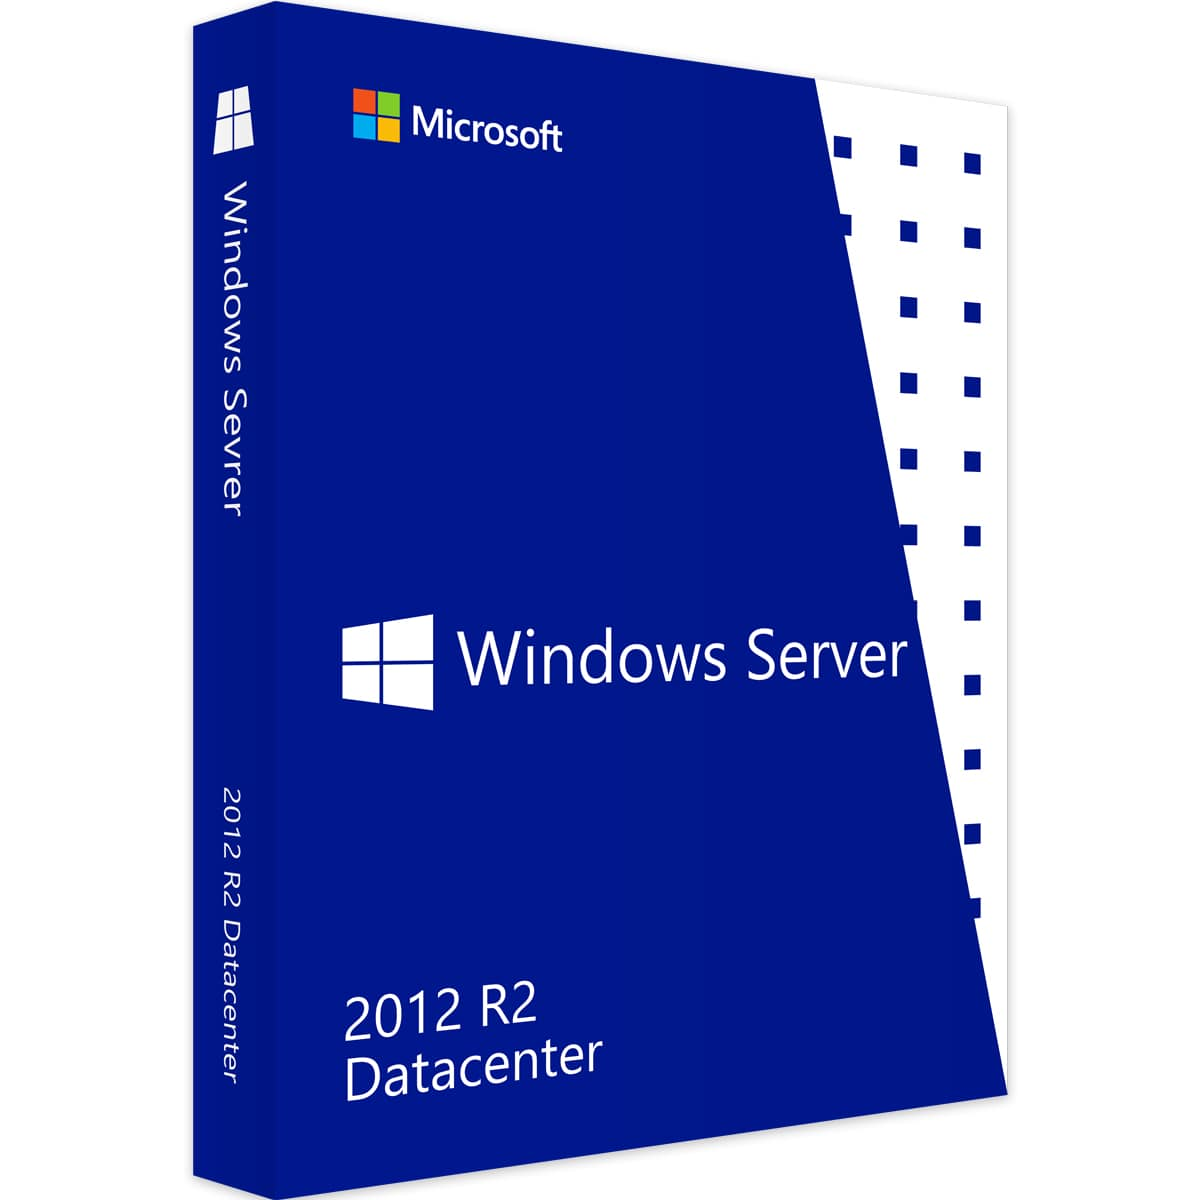 windows-server-2012-datacenter-r2-min